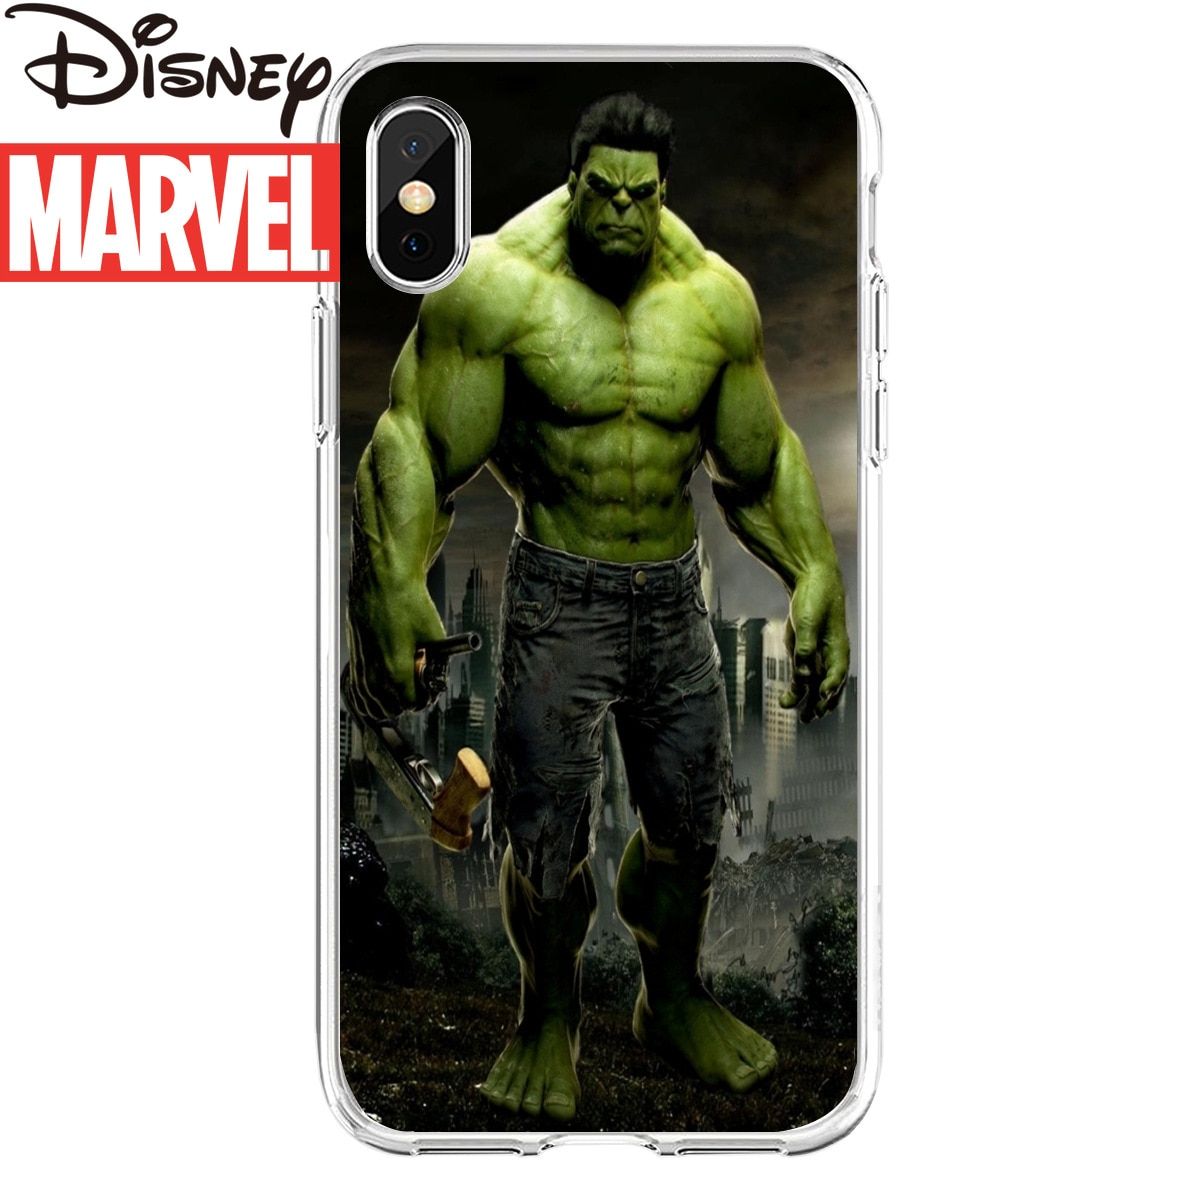 Disney Is Suitable for IPhone12 Marvel Avengers Phone Case Captain America Phone Case Iphone 11 Phone Cases Iphone Xr Case  - buy with discount